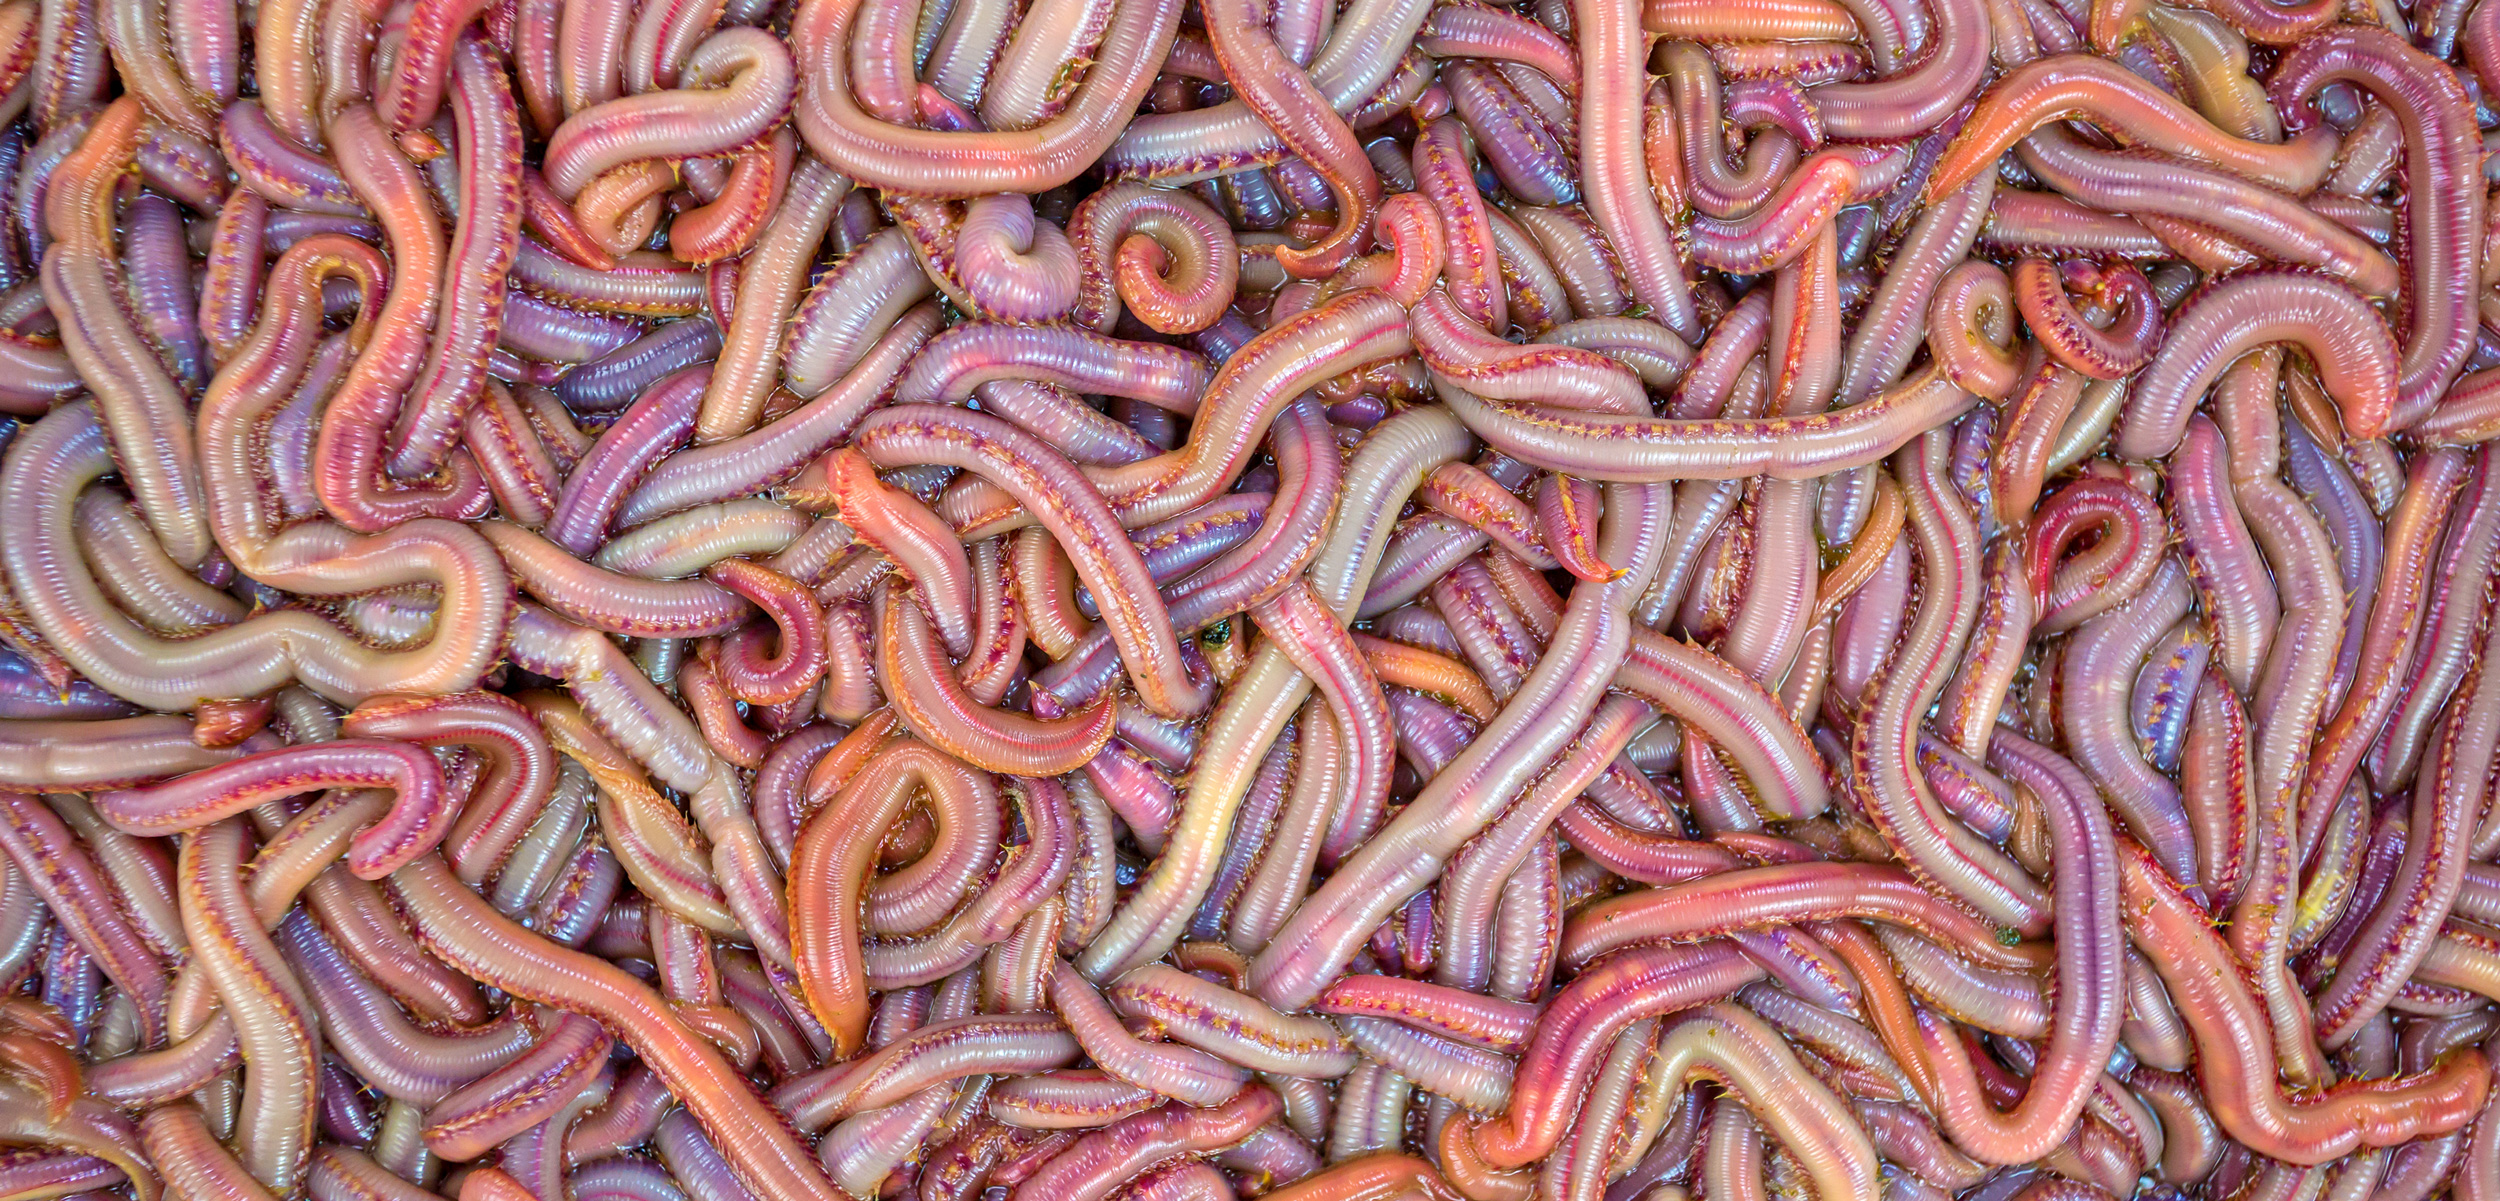 bloodworms